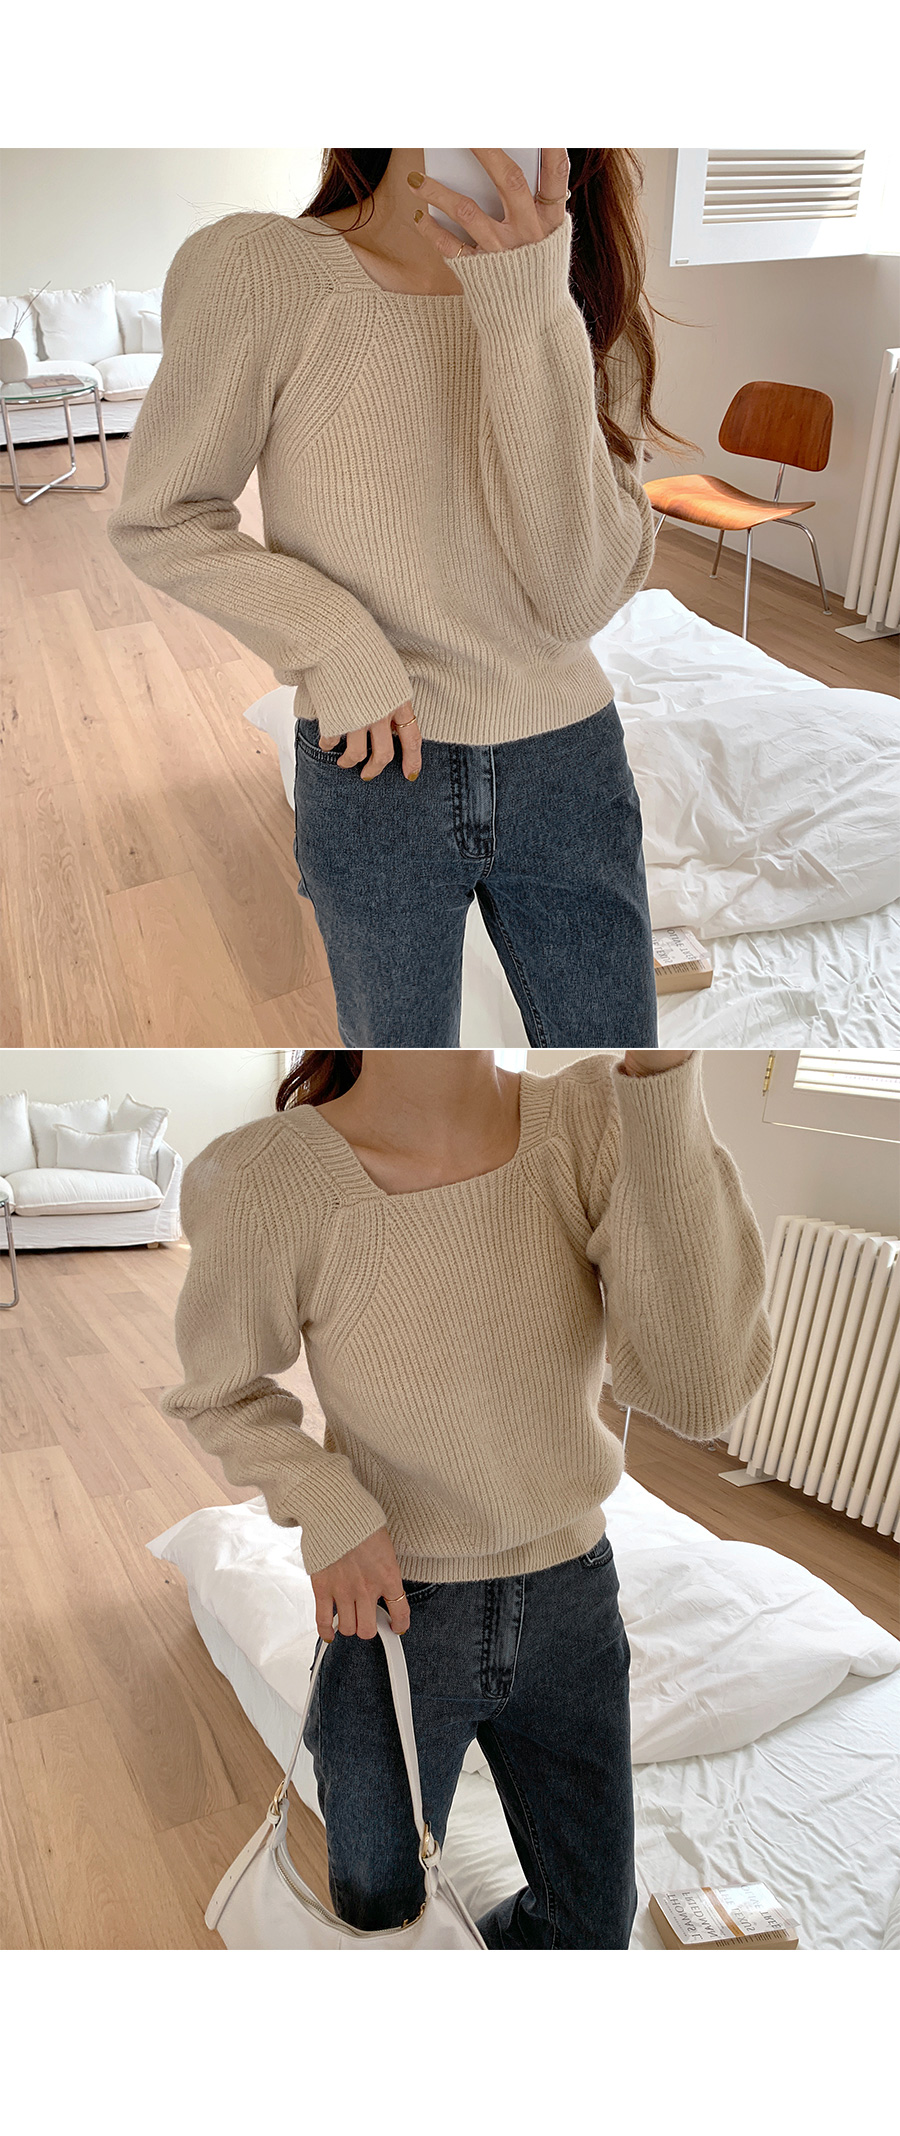 Lovely puff knit